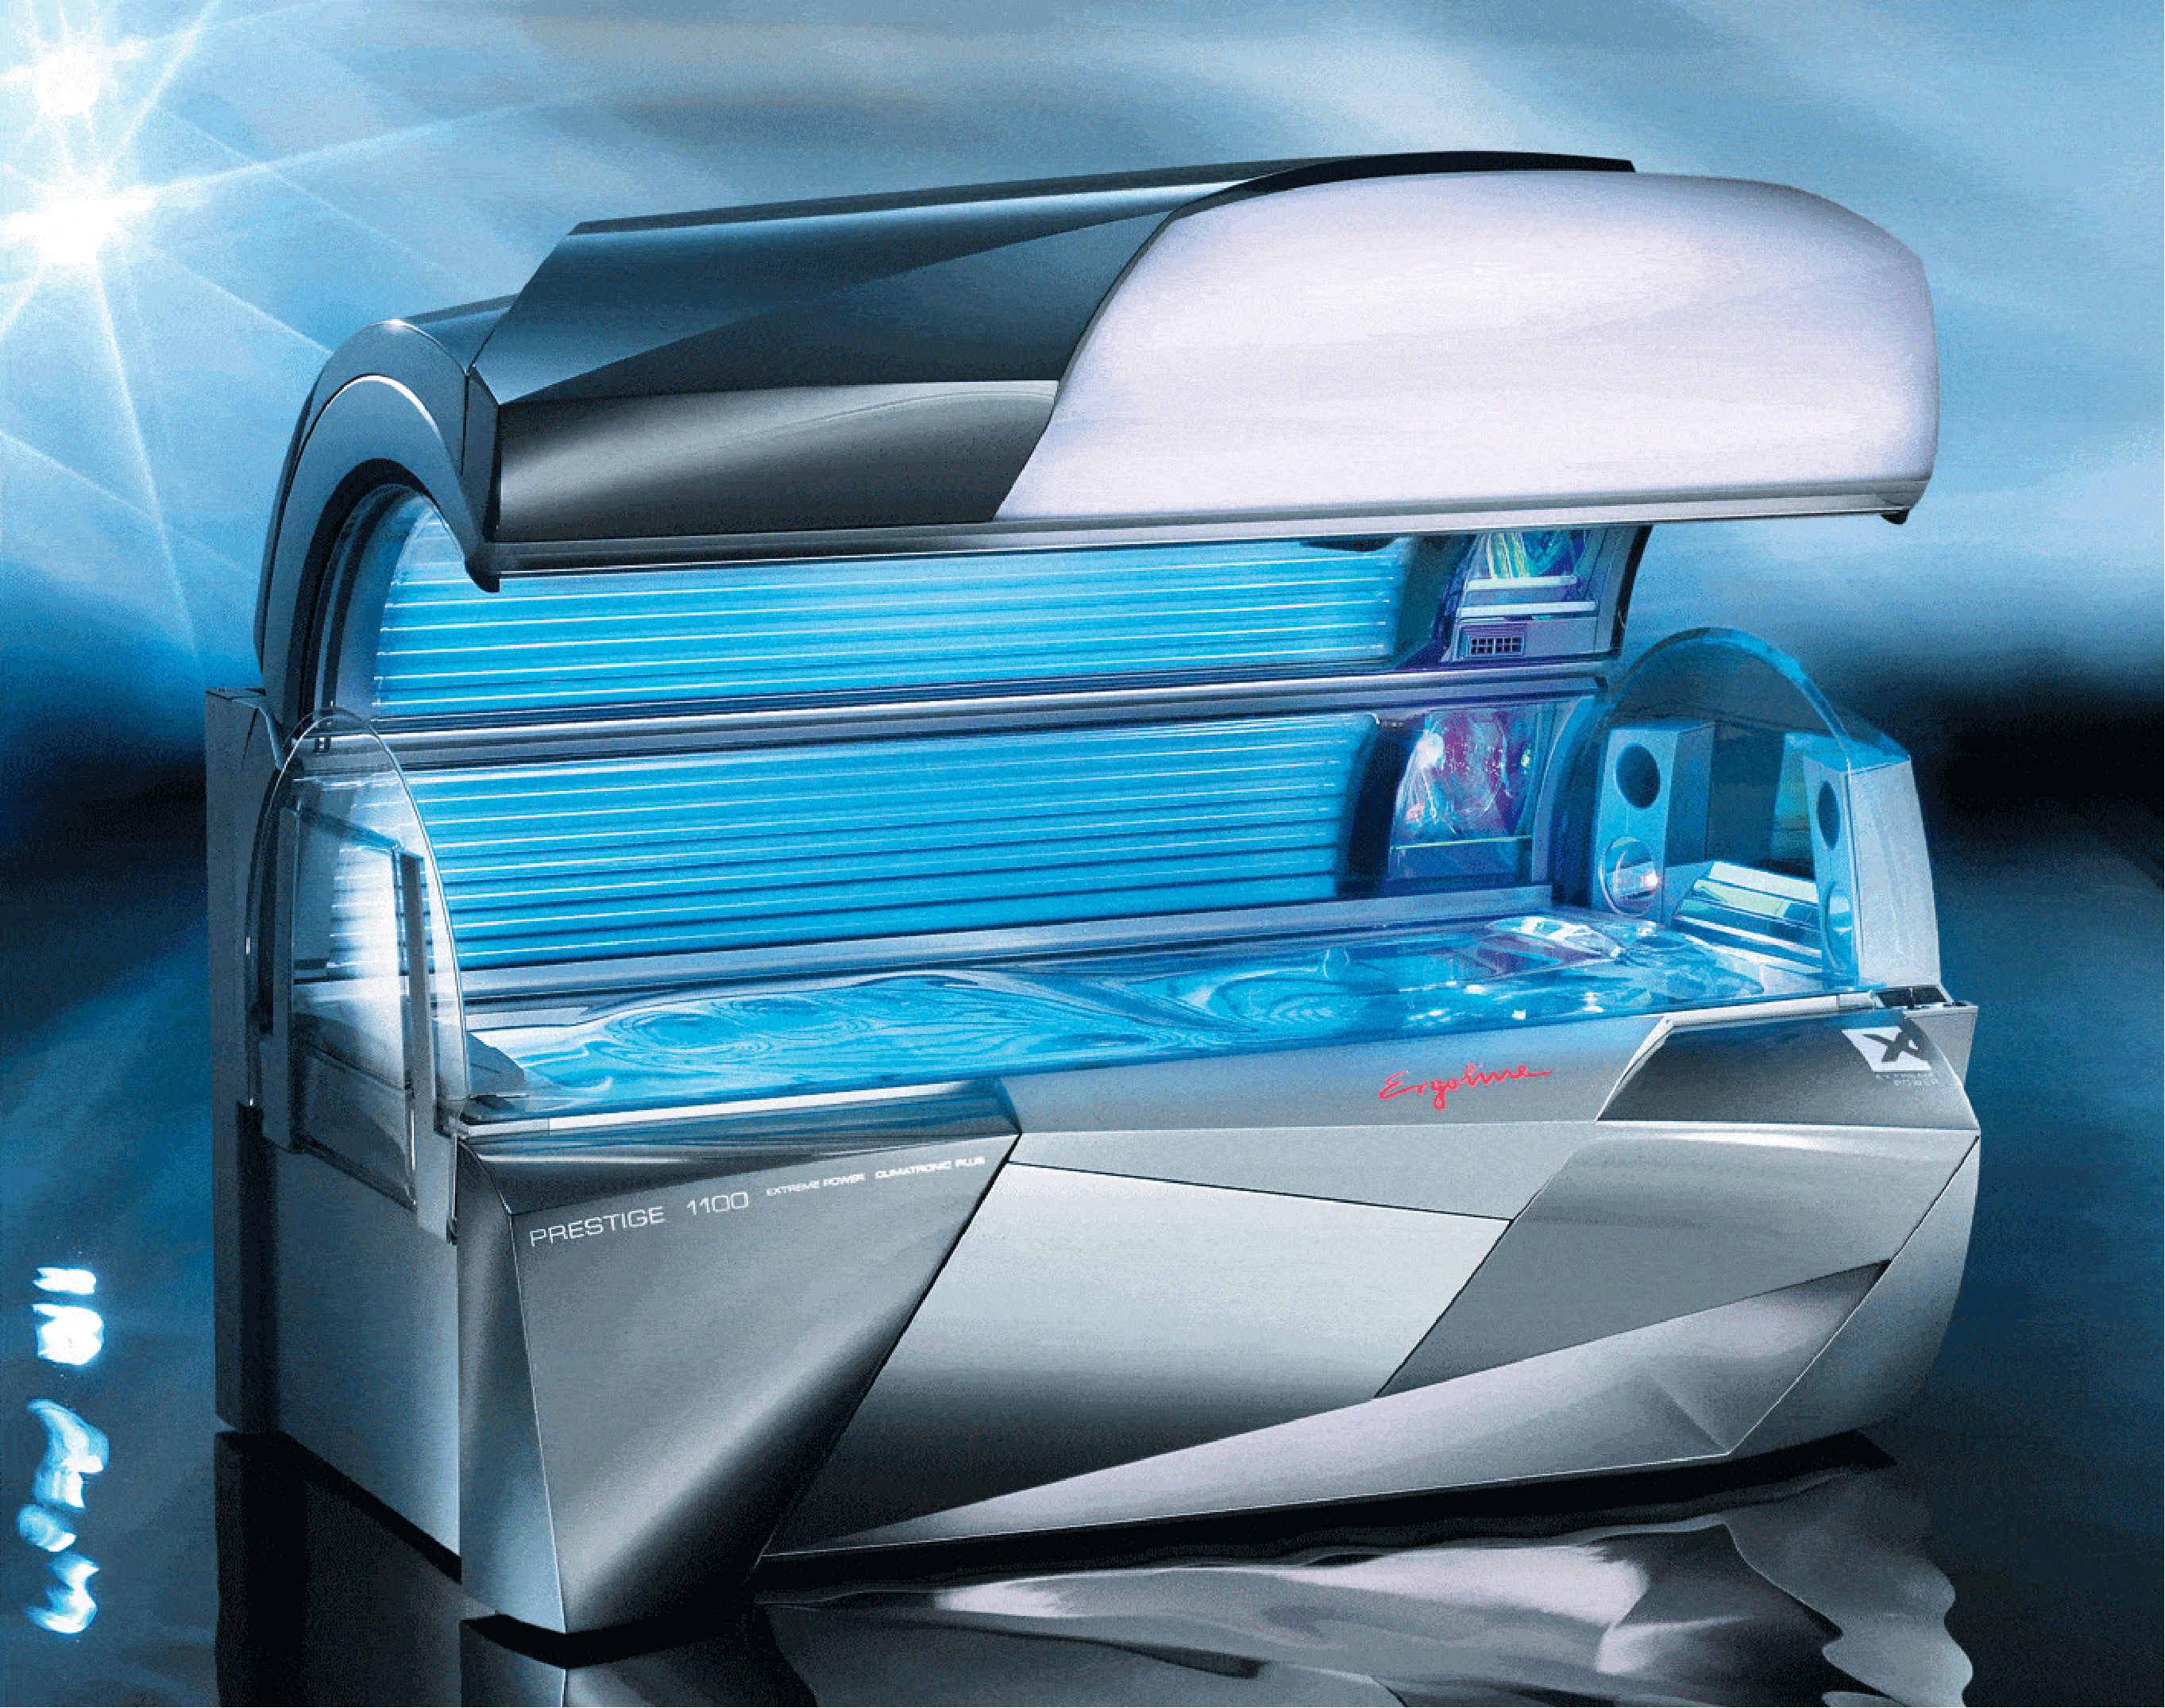 ... of 52 dynamic lamps at 200 watts each plus high-pressure facials and  shoulder tanners. The maximum tanning time is just 10 minutes. This bed is  ideal to ...